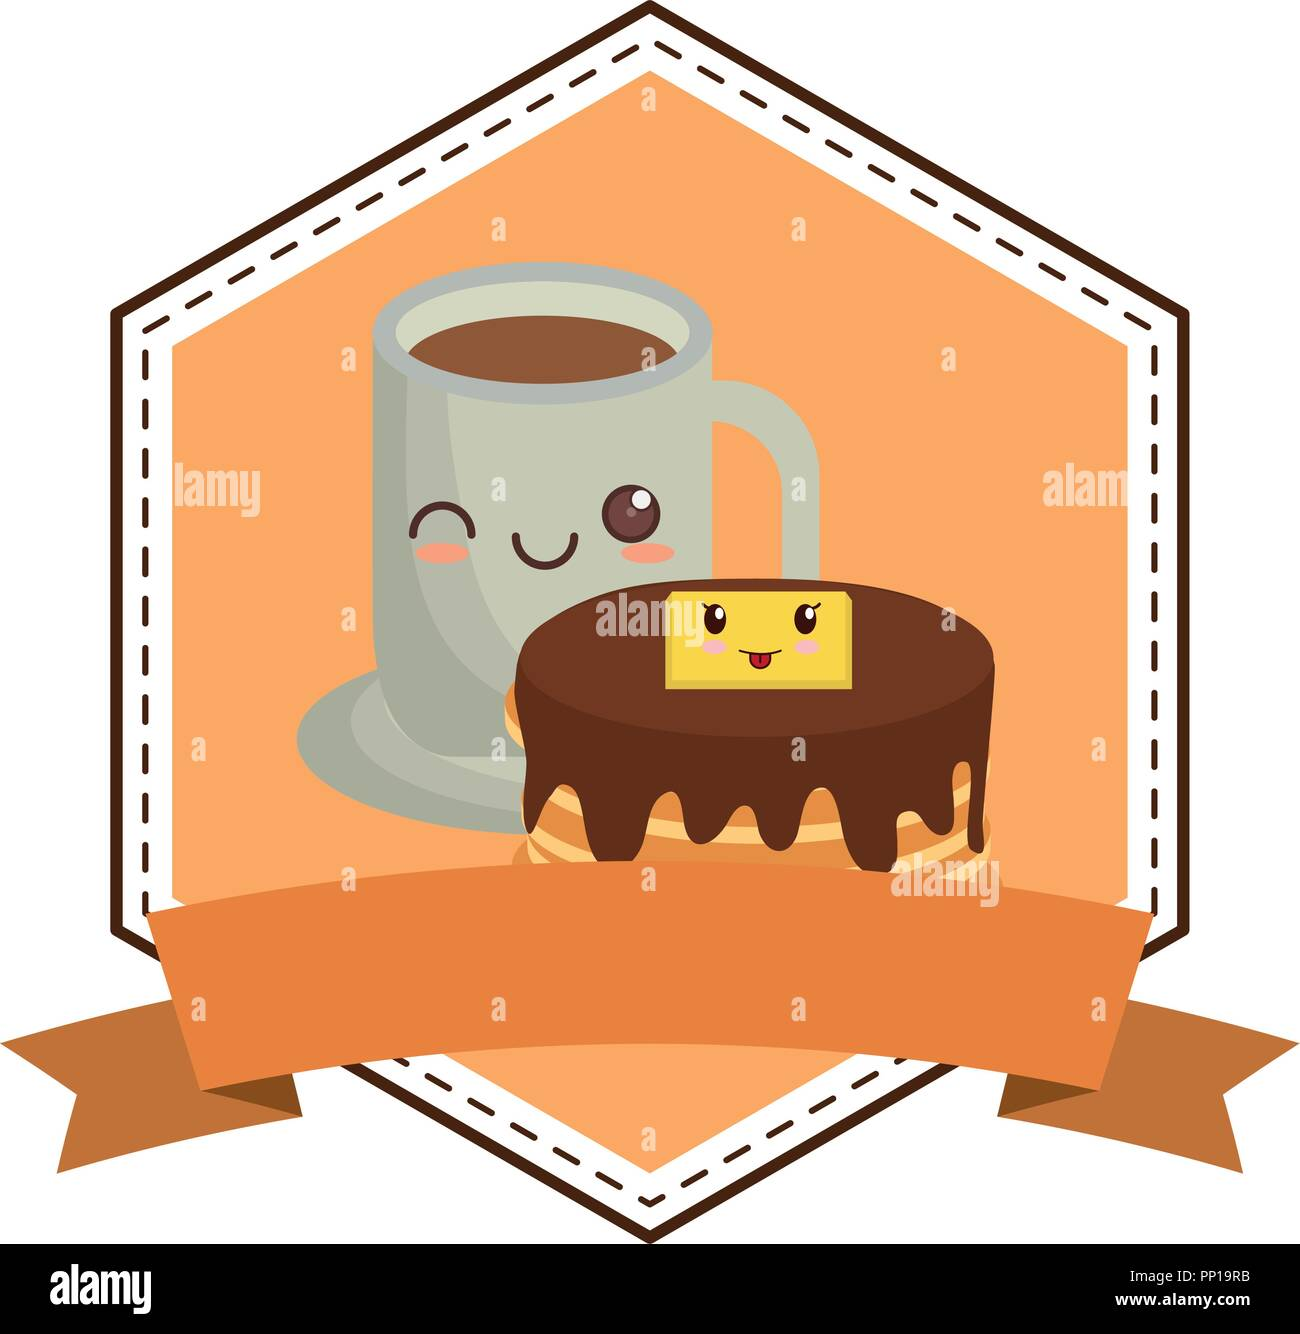 emblem with kawaii pancakes with coffee cup over white background, vector illustration - Stock Image